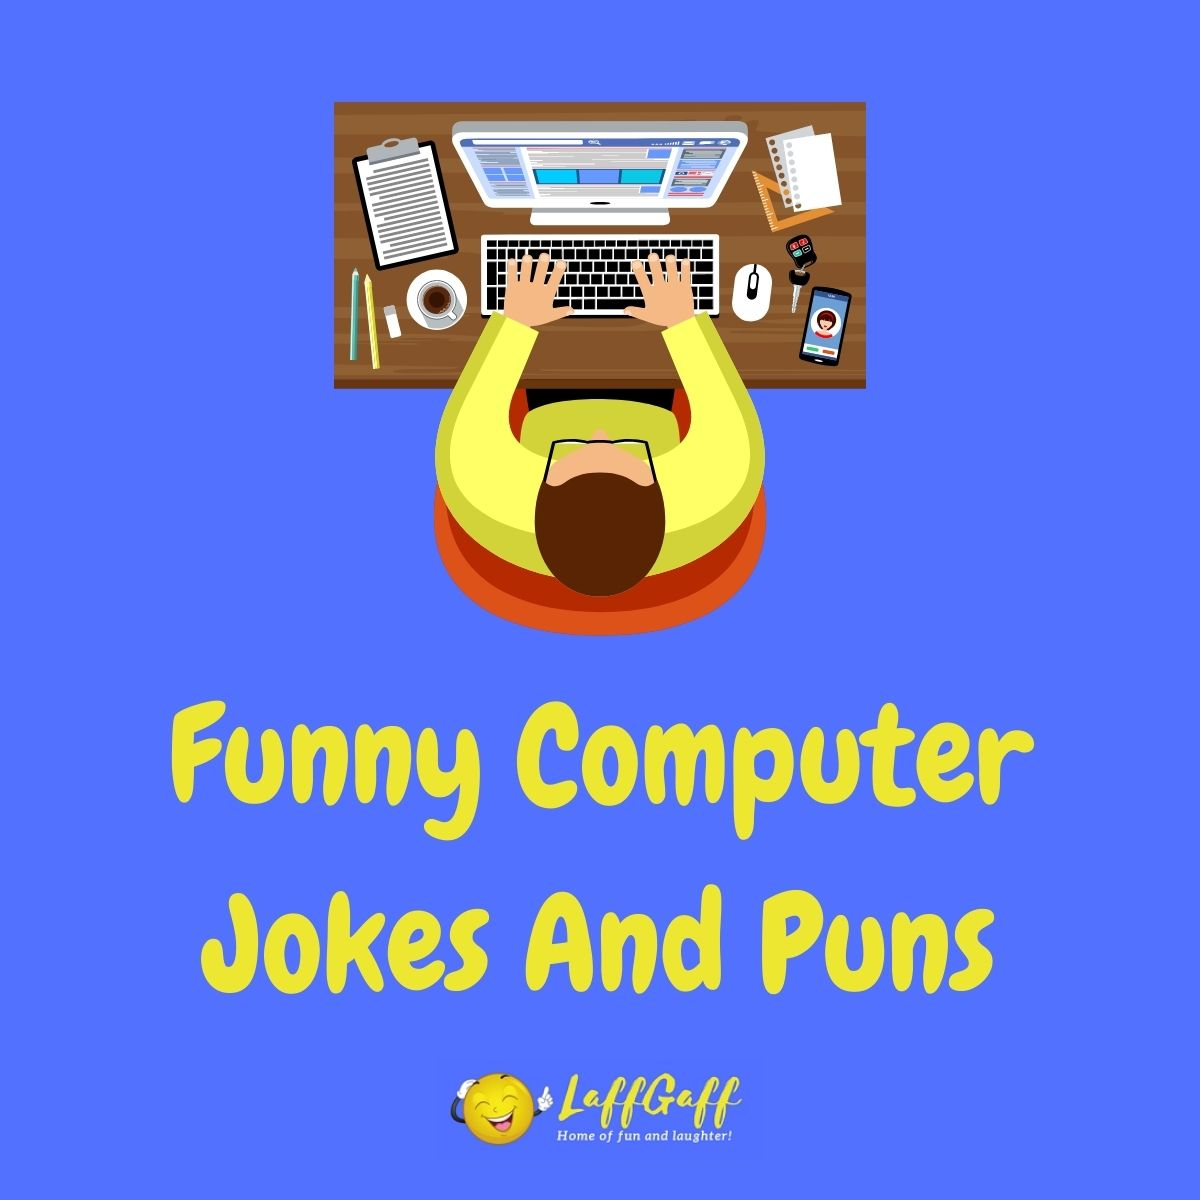 Featured image for a page of funny computer jokes and puns.